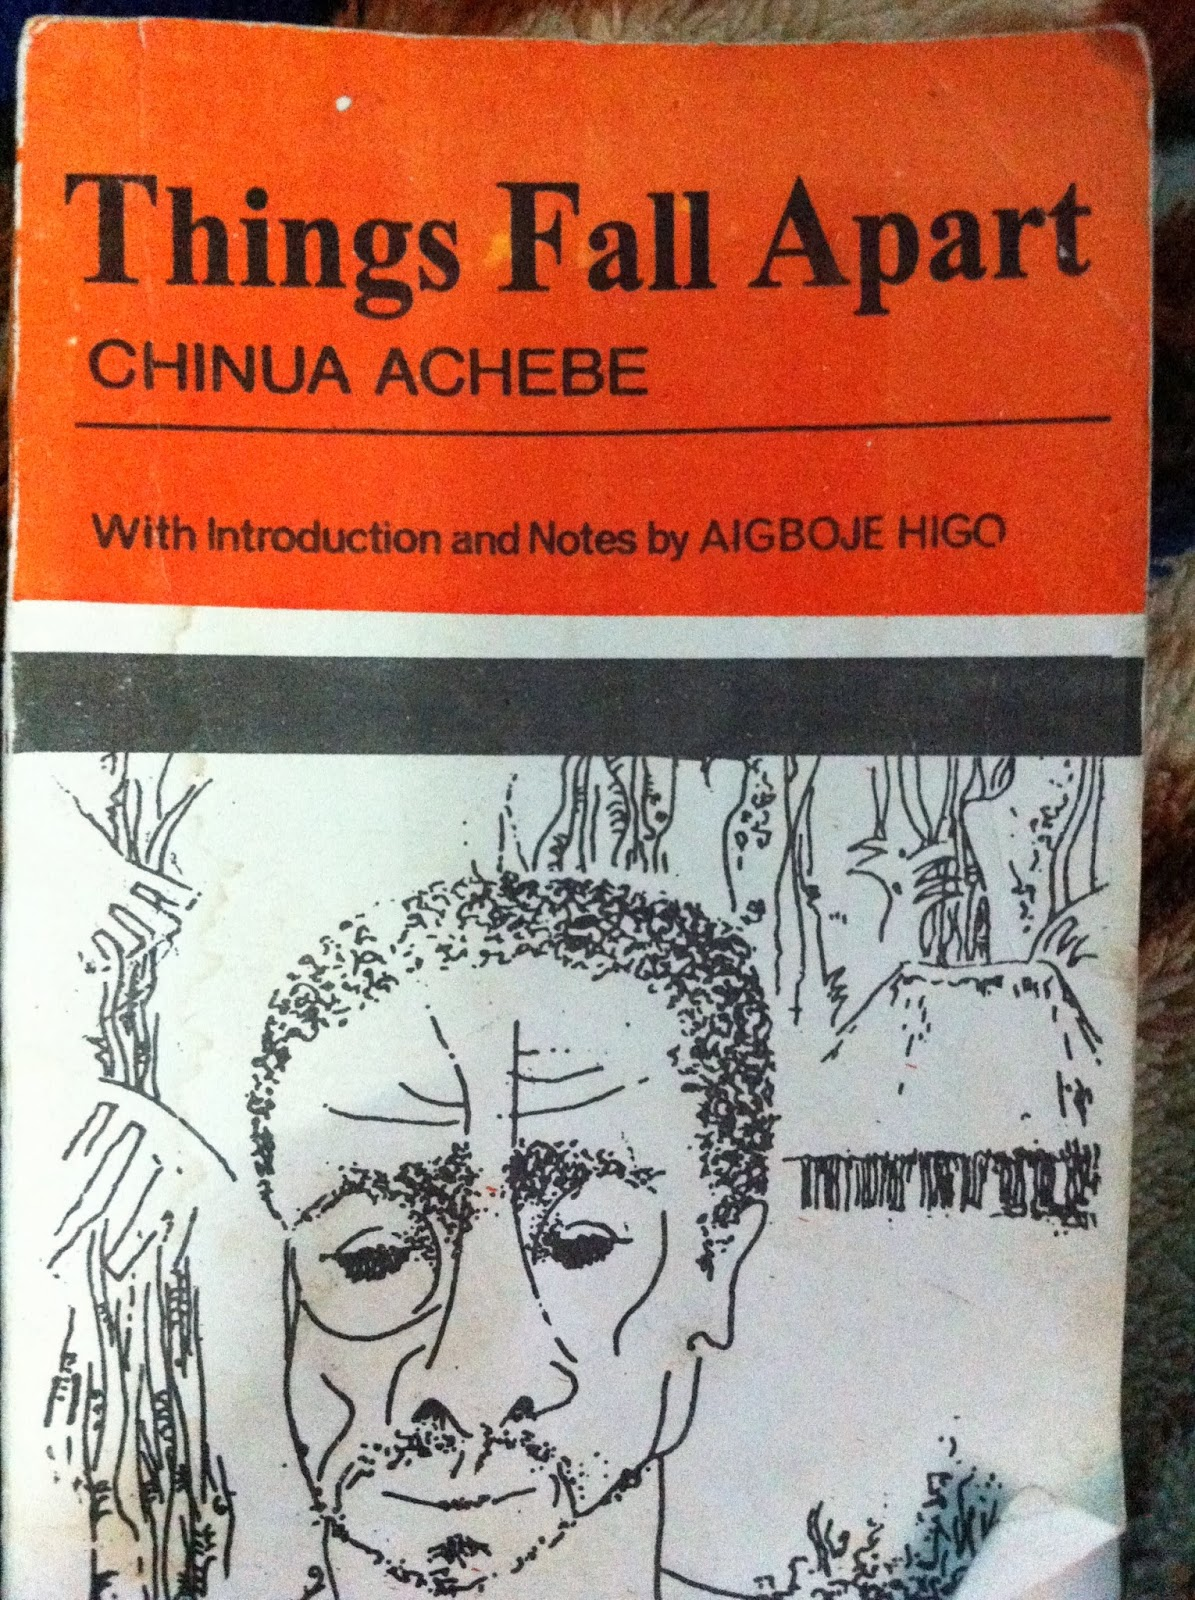 the downfall of umoufia in things fall apart by chinua achebe 'things fall apart', a novel by chinua achebe, has achieved textual integrity through a set of core ideas which are developed through the characters and events in the novel.